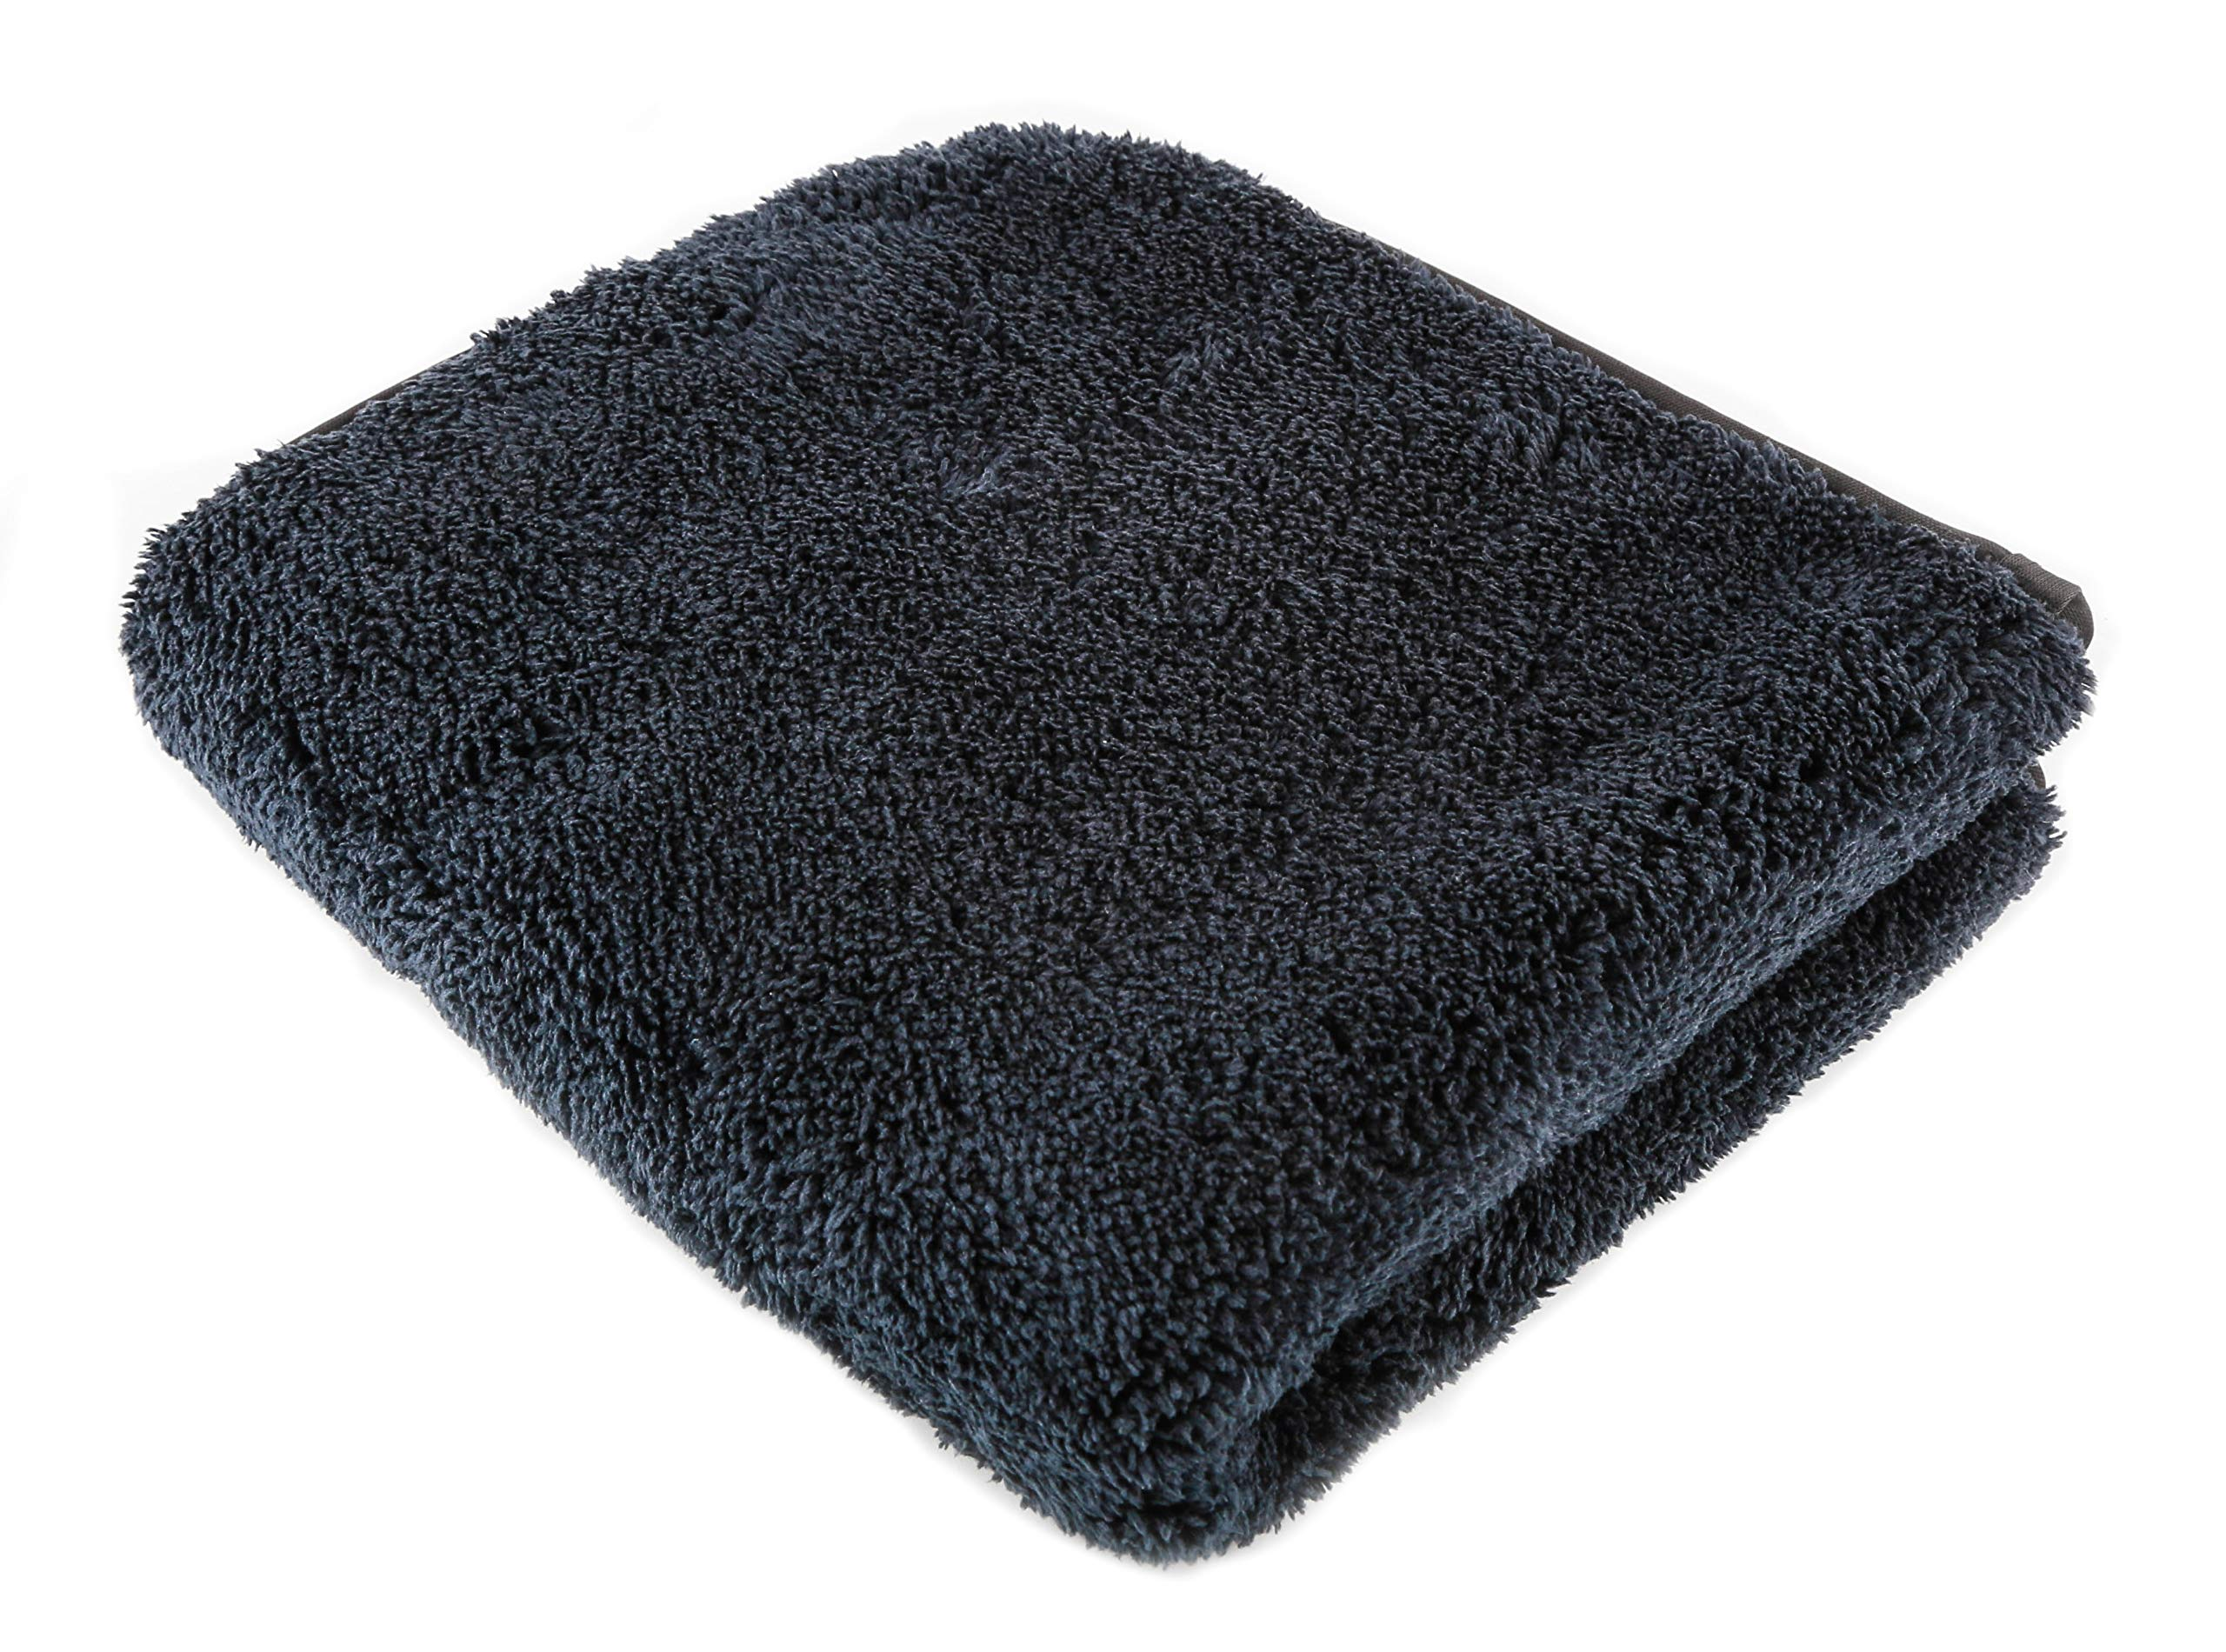 """SGCB 16""""x16"""" Microfiber Towel for Cars, 1200GSM Car Wash Drying Towel Dual Layer Thick Plush Car Cleaning Detailing Towel Lint Streak Free Super Absorbent Car Polishing Towel for Wax Water Dust Remove"""